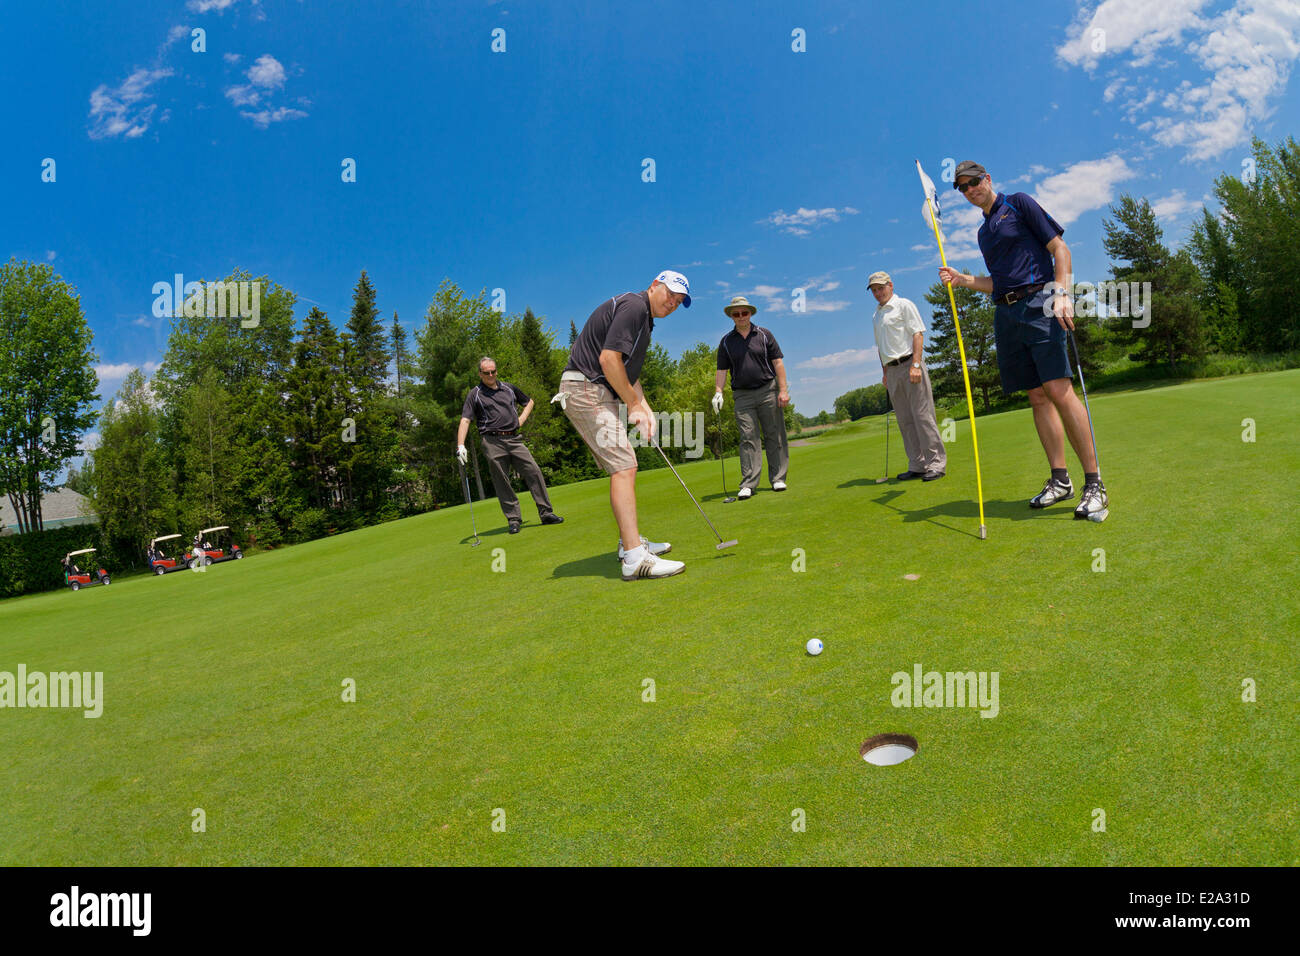 Canada, Quebec Province, golf course, on the green, final blow - Stock Image